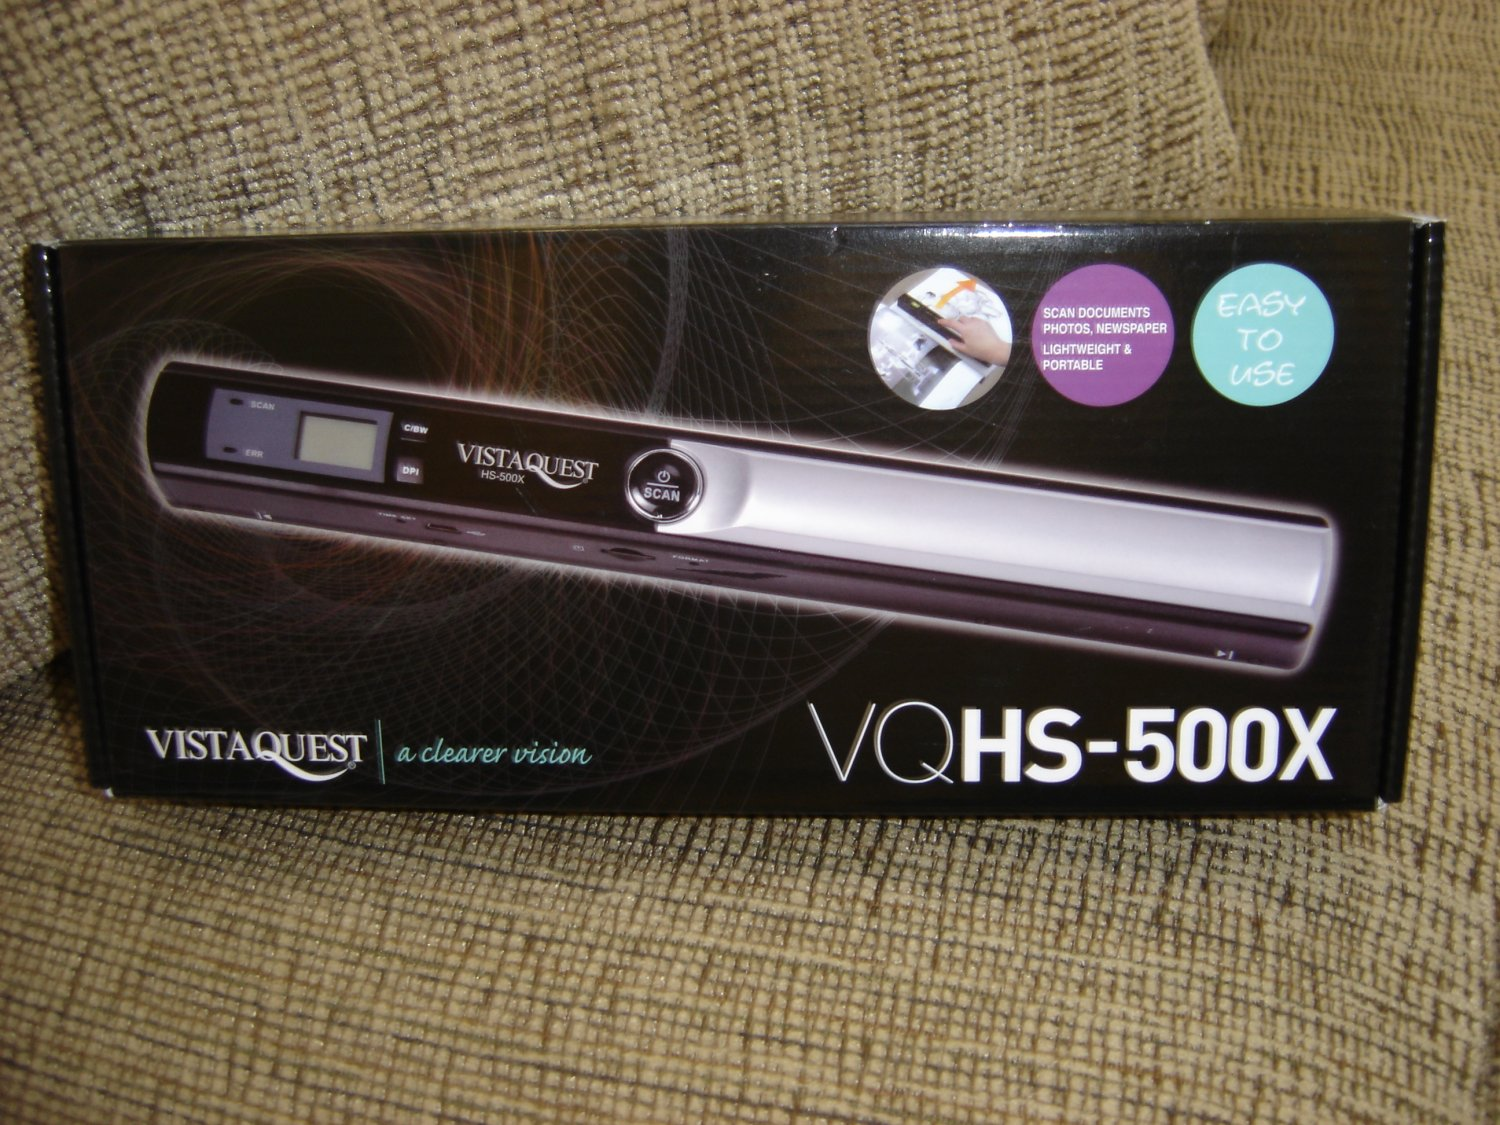 Vistaquest VQ HS 500X - PORTABLE SCAN TO SD CARD - EASY TO USE - NEW!